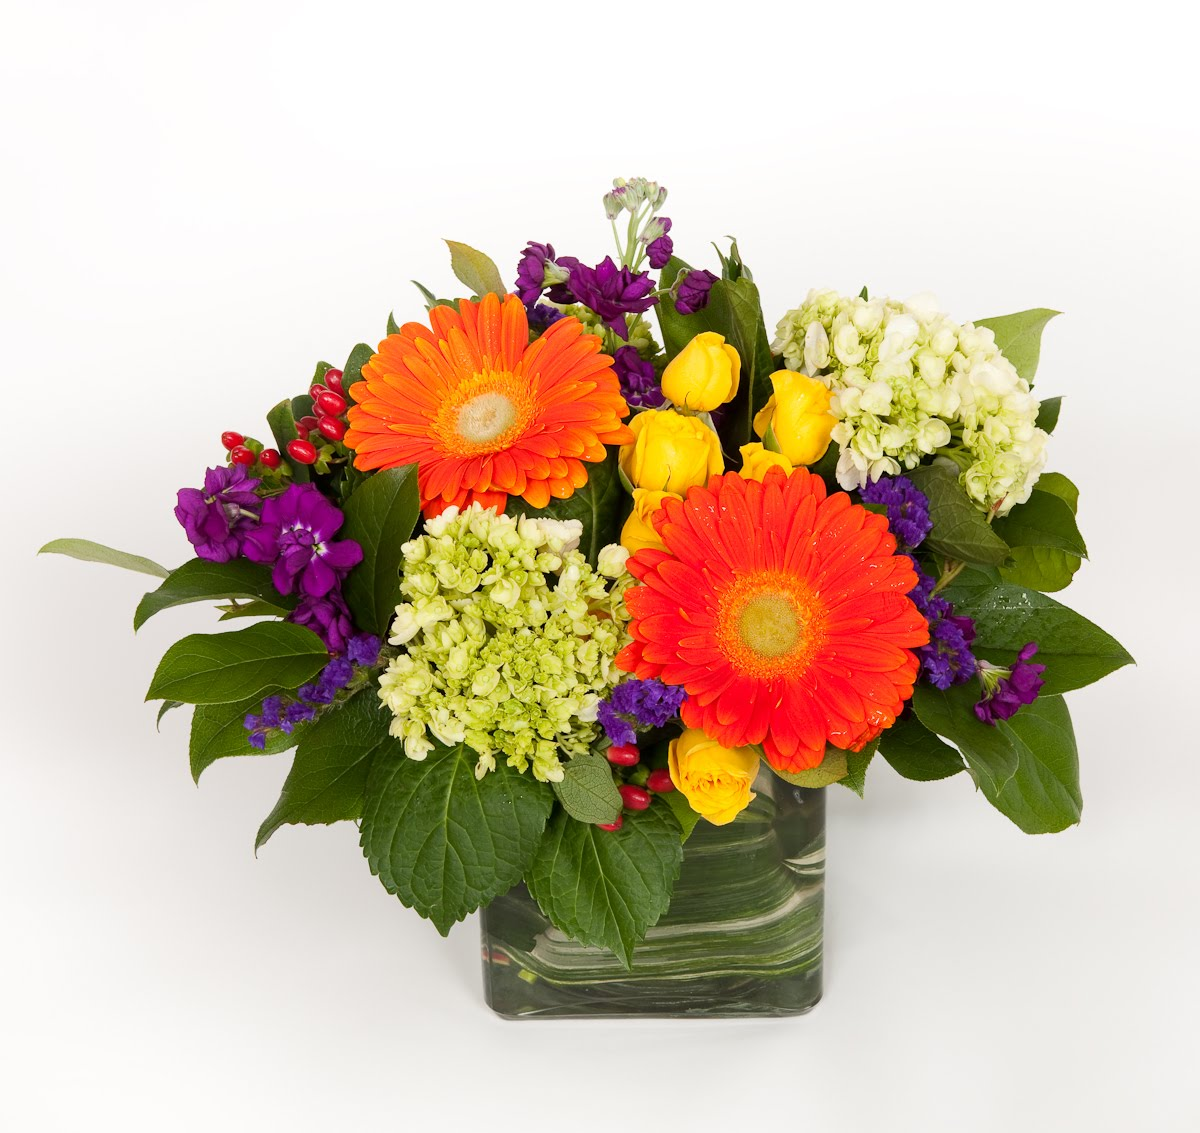 Funeral flower sympathy ideas centuries have past and also continue to think about and also factories offer astonishing delight to people from upon countries izmirmasajfo Gallery